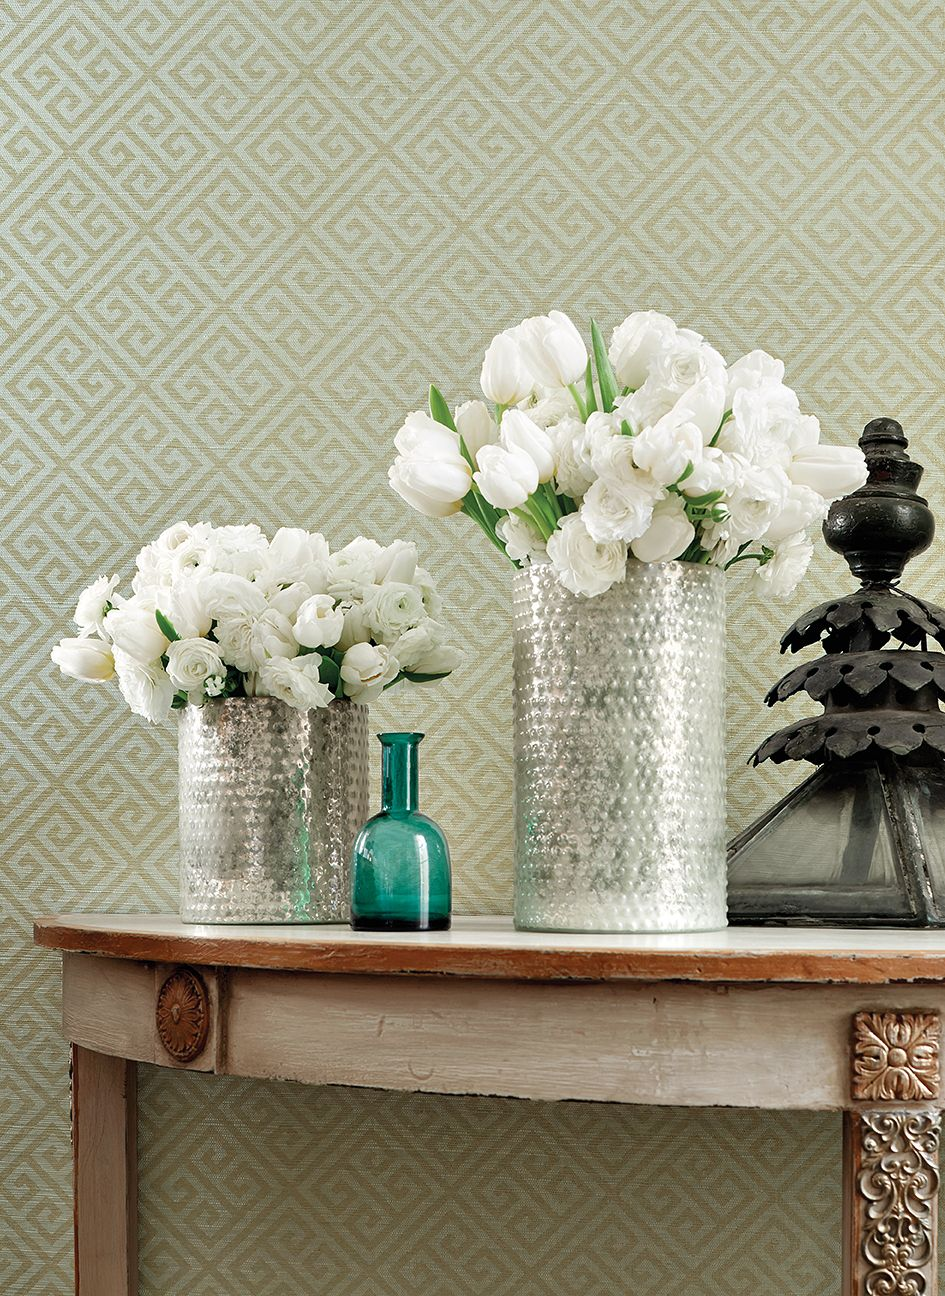 Maze wallpaper in aqua and metallic gold from the